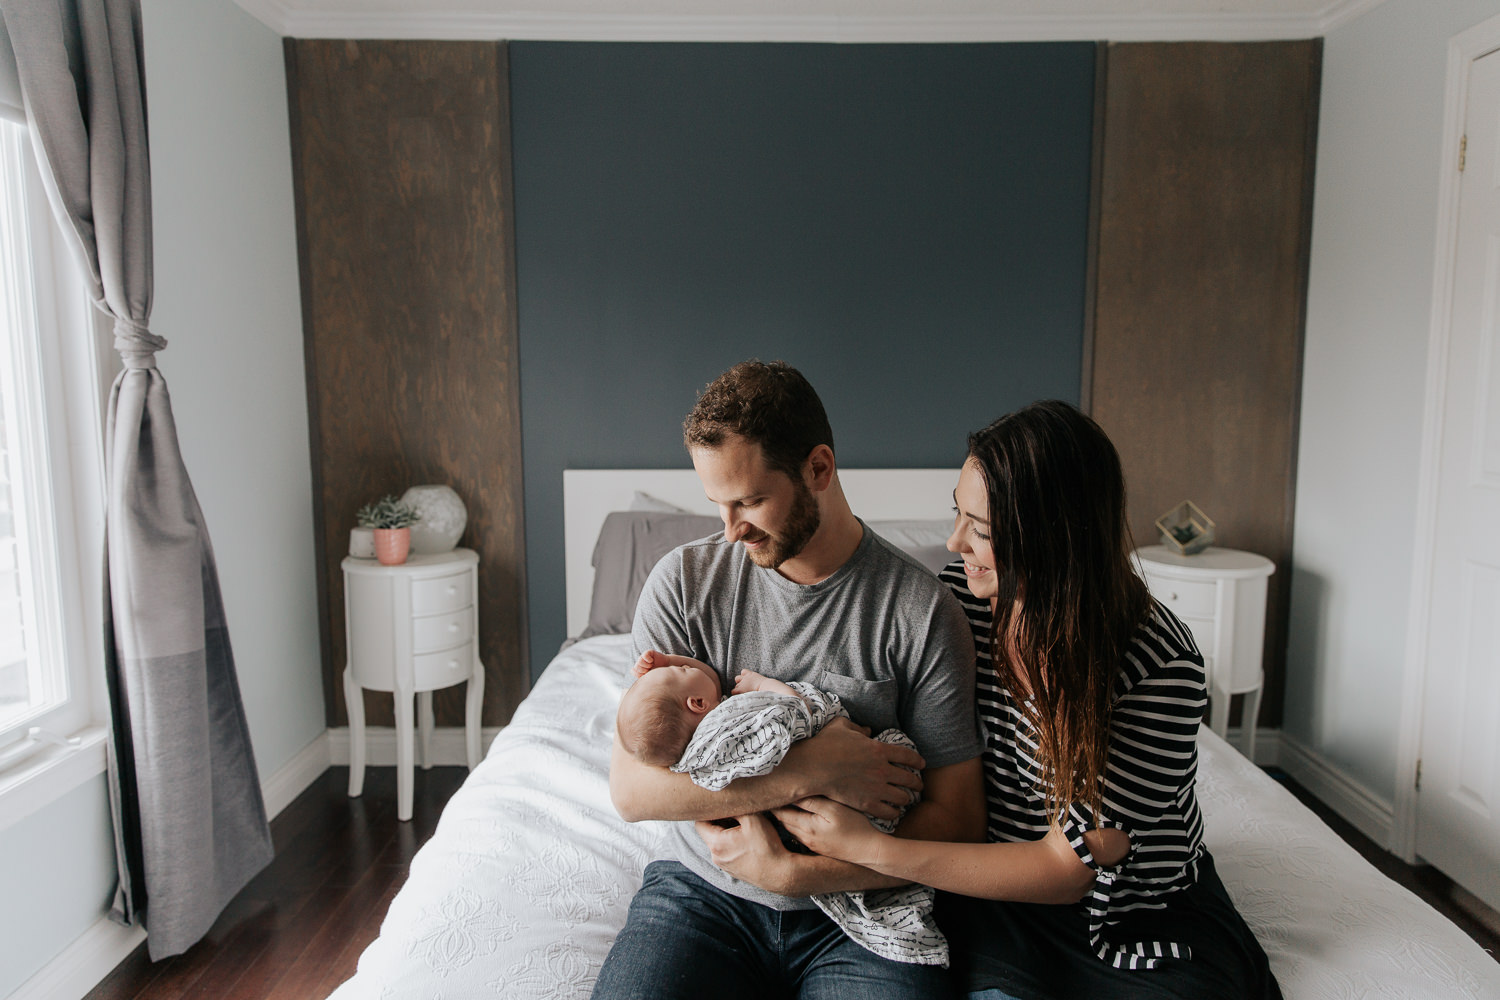 family of 3, new parents sitting on the edge of bed, dad holding 2 week old baby girl with light hair, mom snuggled next to husband, smiling at daughter - York Region In-Home Photography